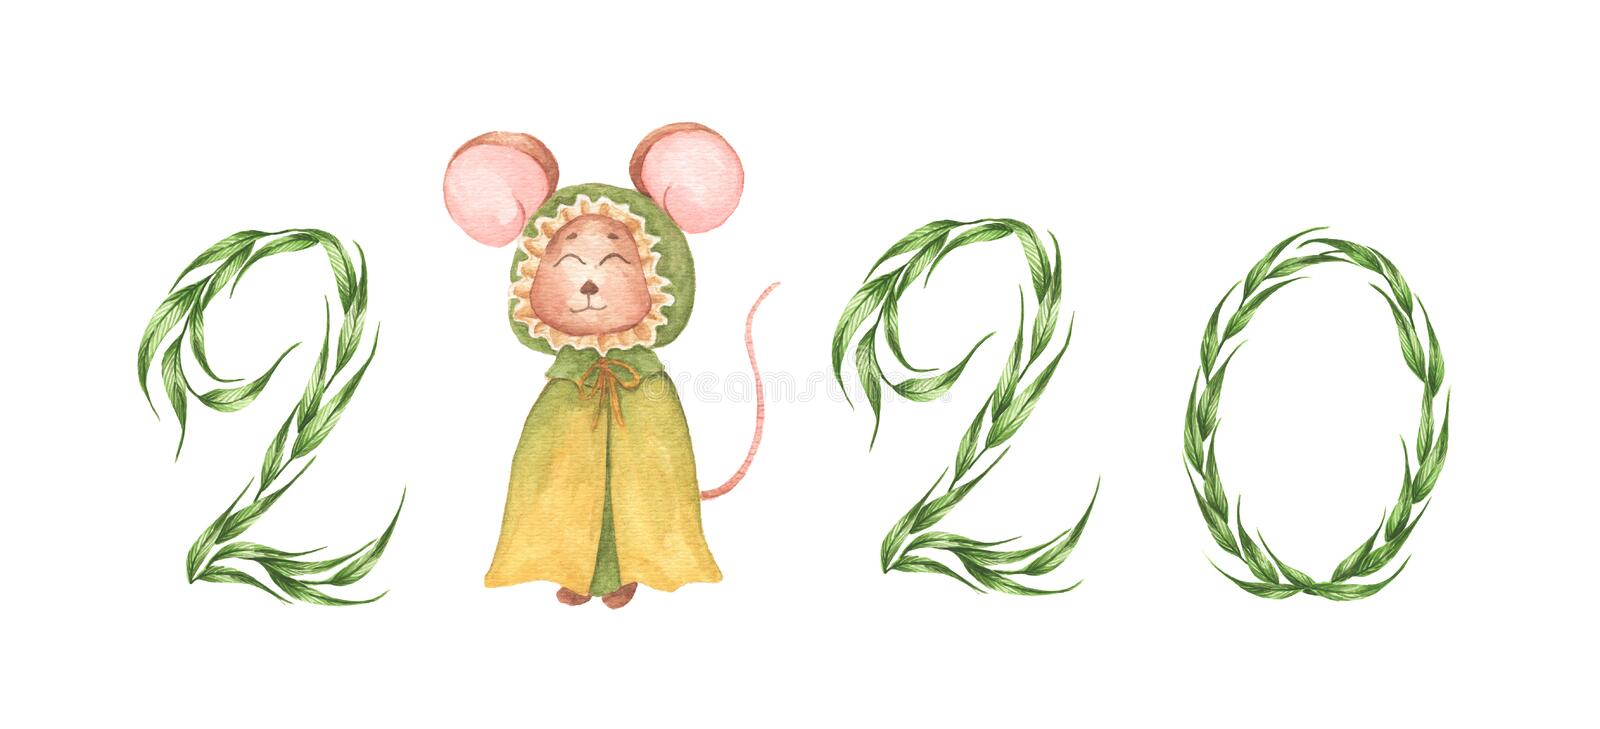 Happy New Year 2020 numbers and little mouse in green cloak with hood royalty free illustration